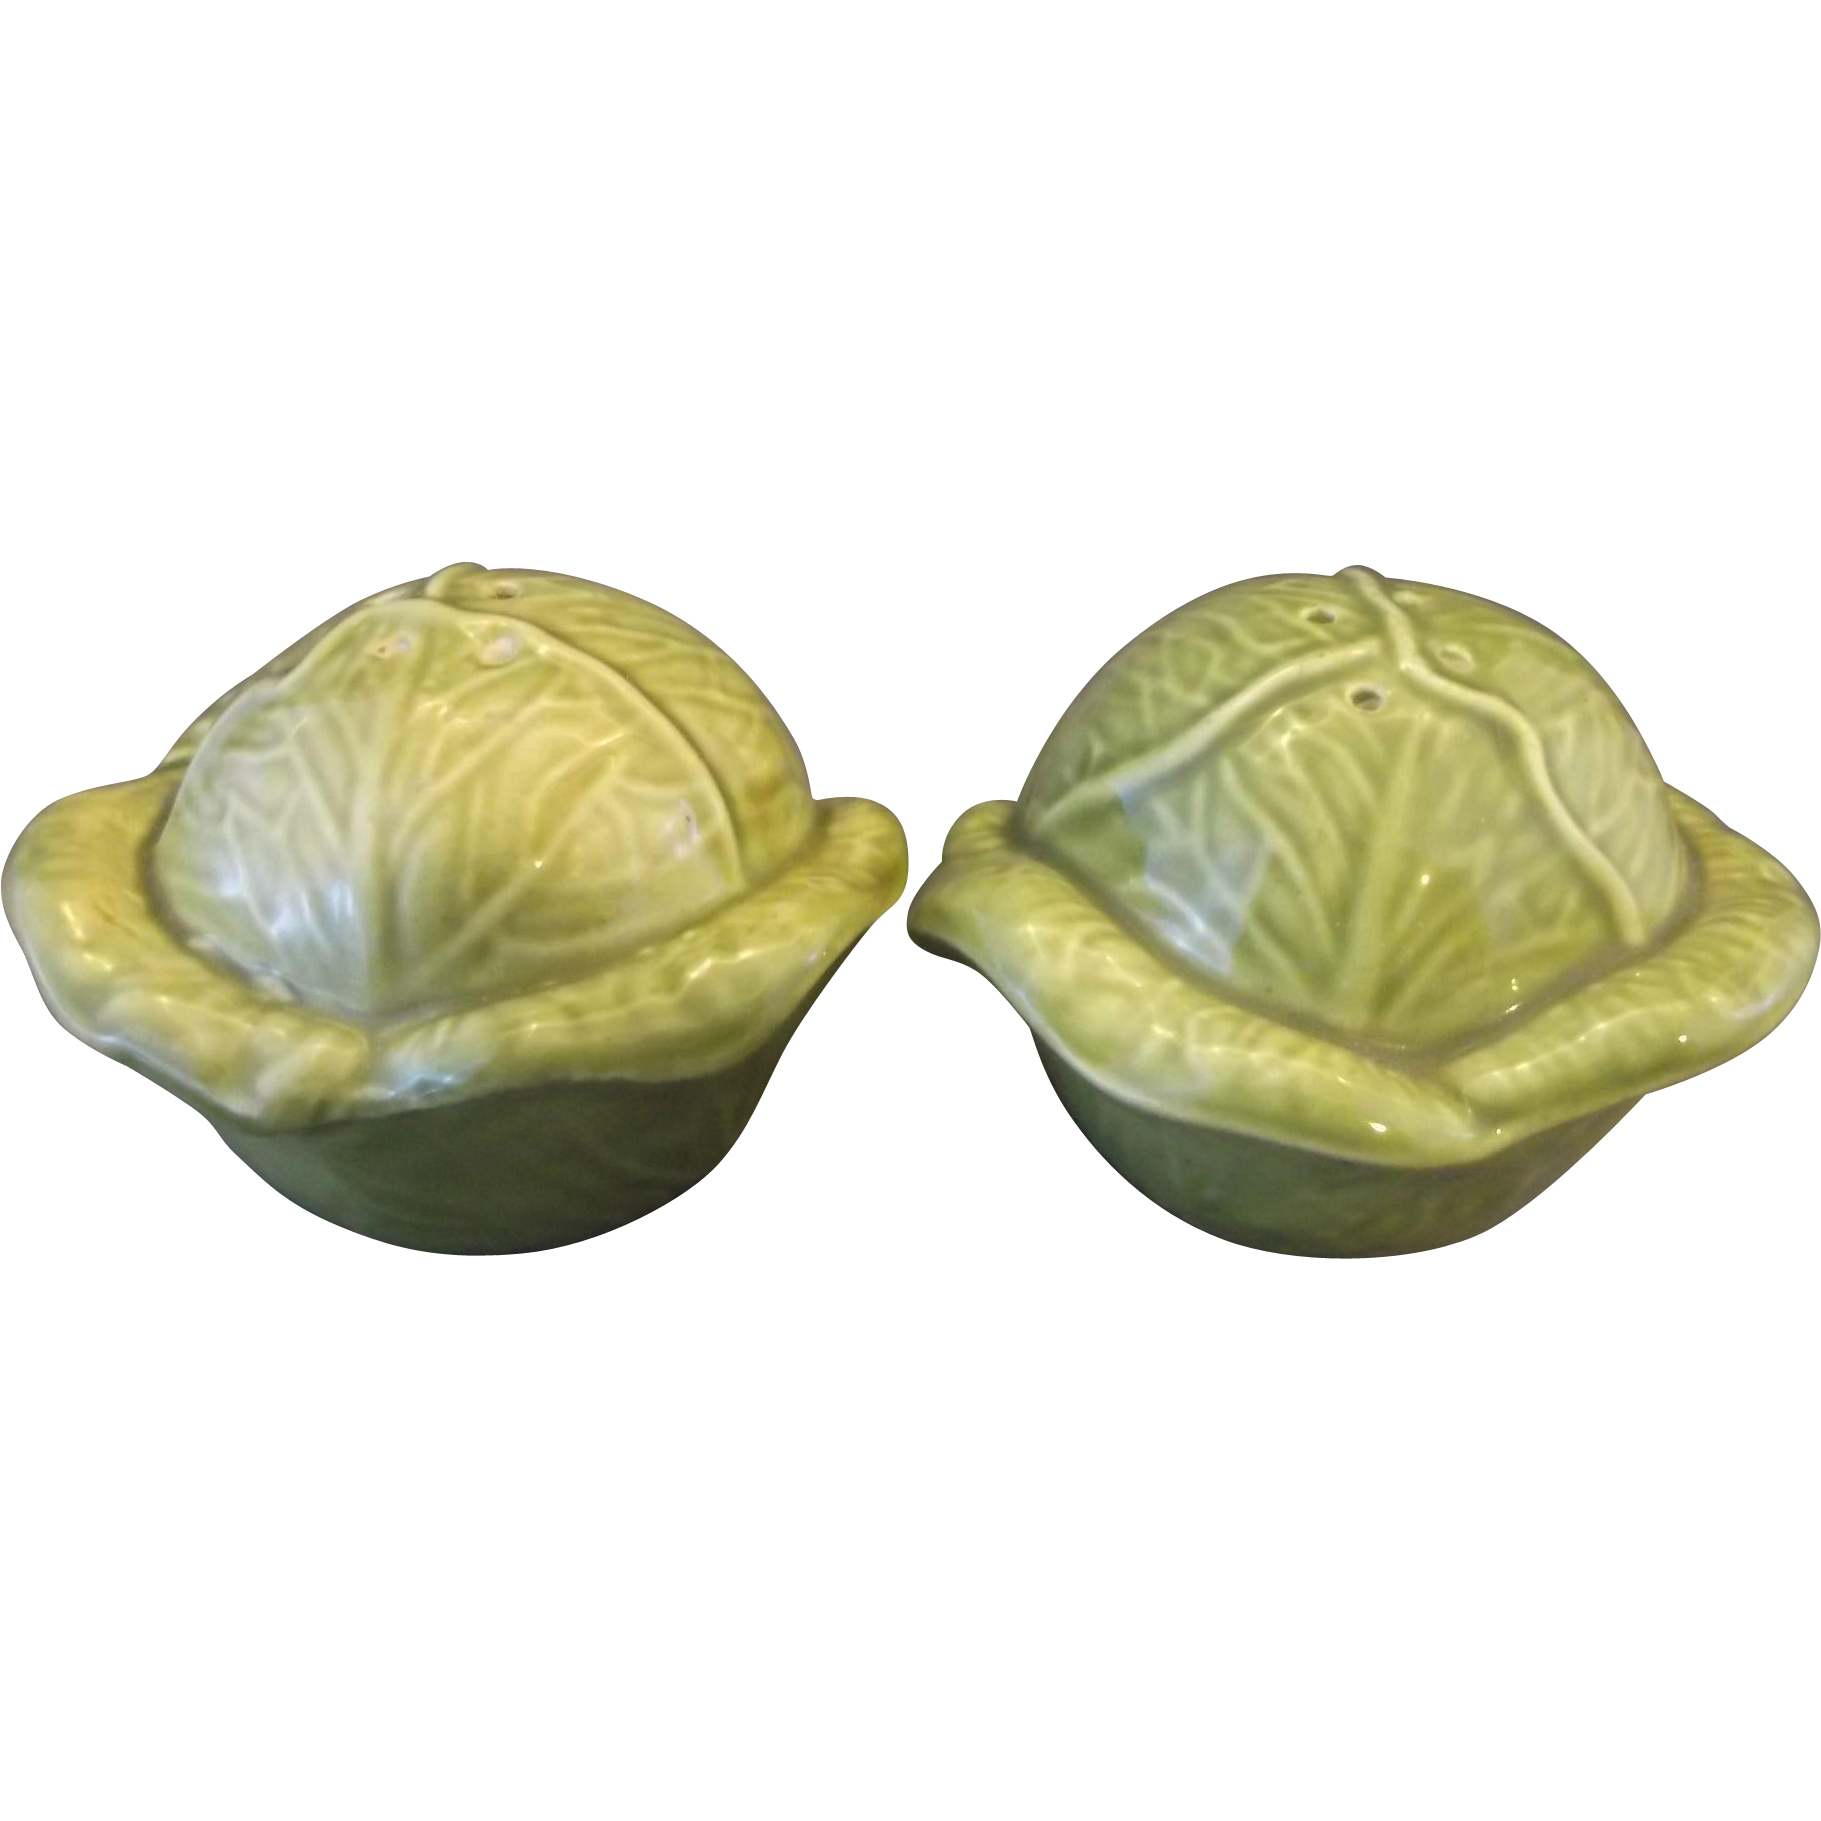 Holland Mold Cabbage Salt Pepper Shakers Green 1970s